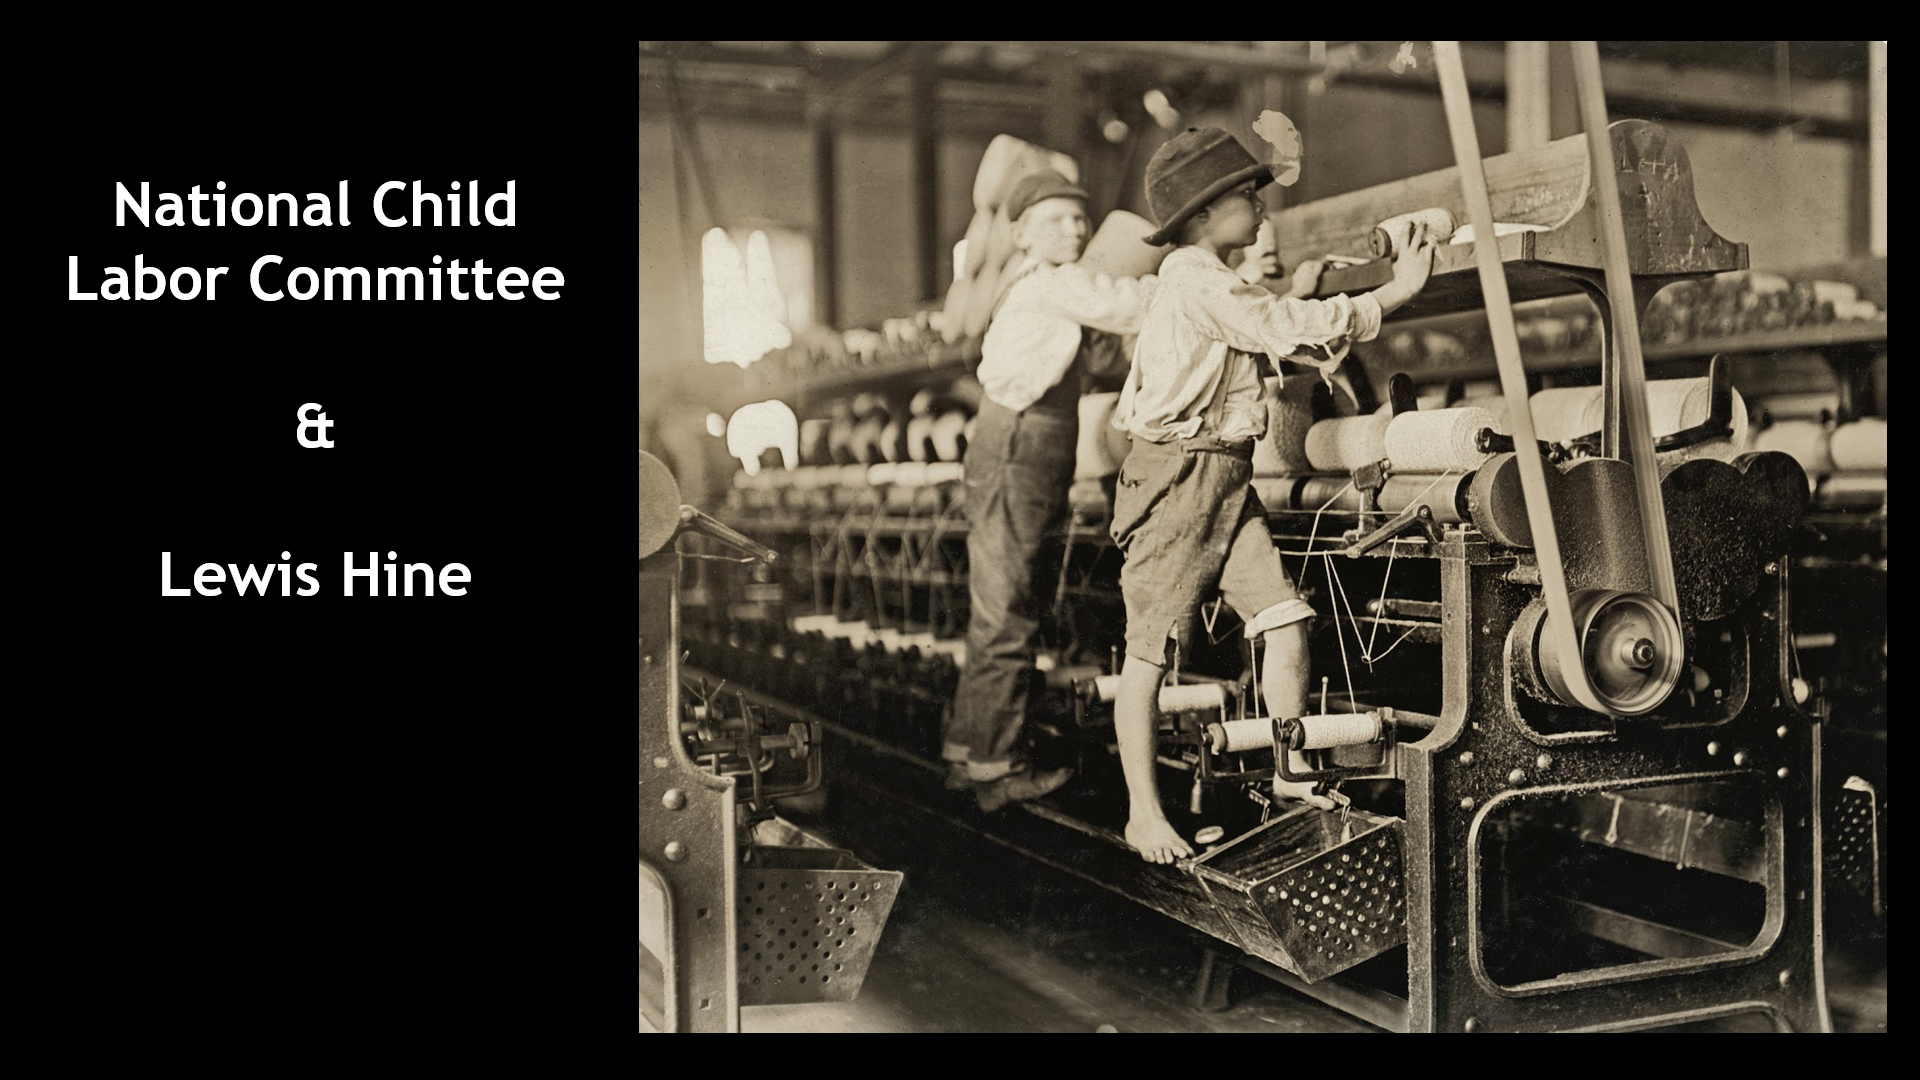 National Child Labor Committee and Lewis Hine